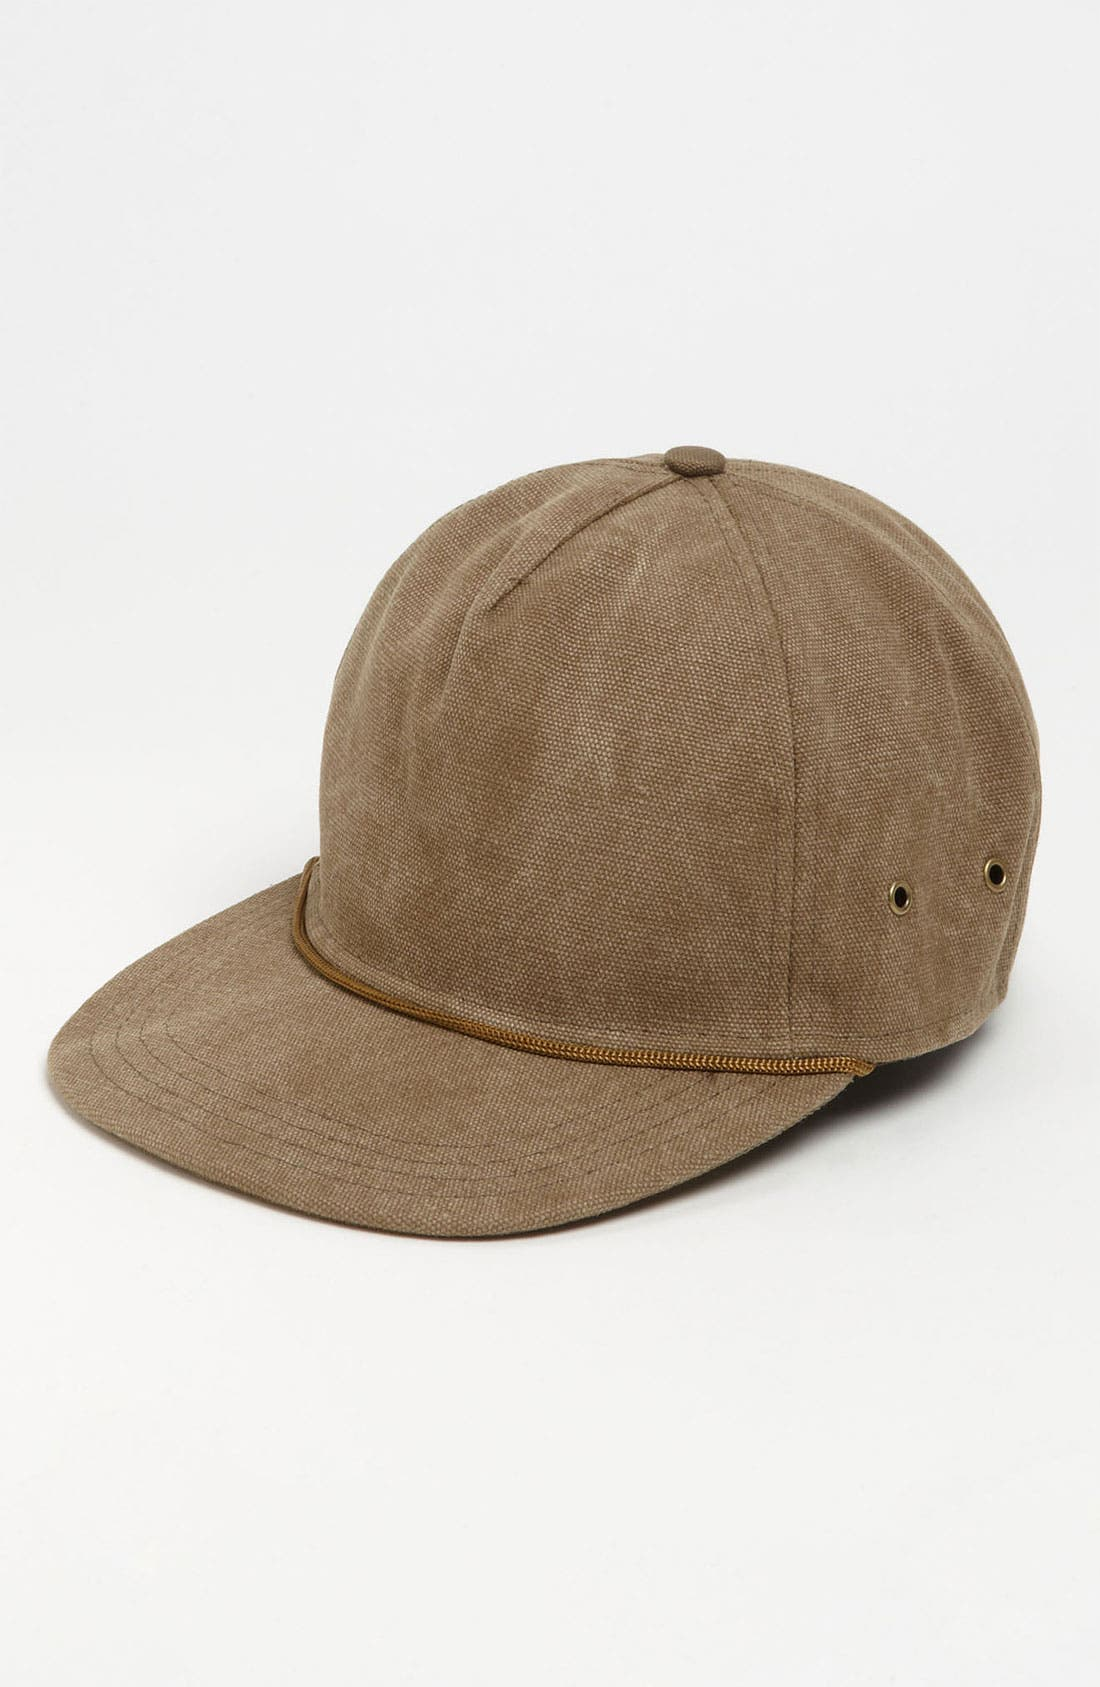 Alternate Image 1 Selected - Vans 'Redding' Baseball Cap